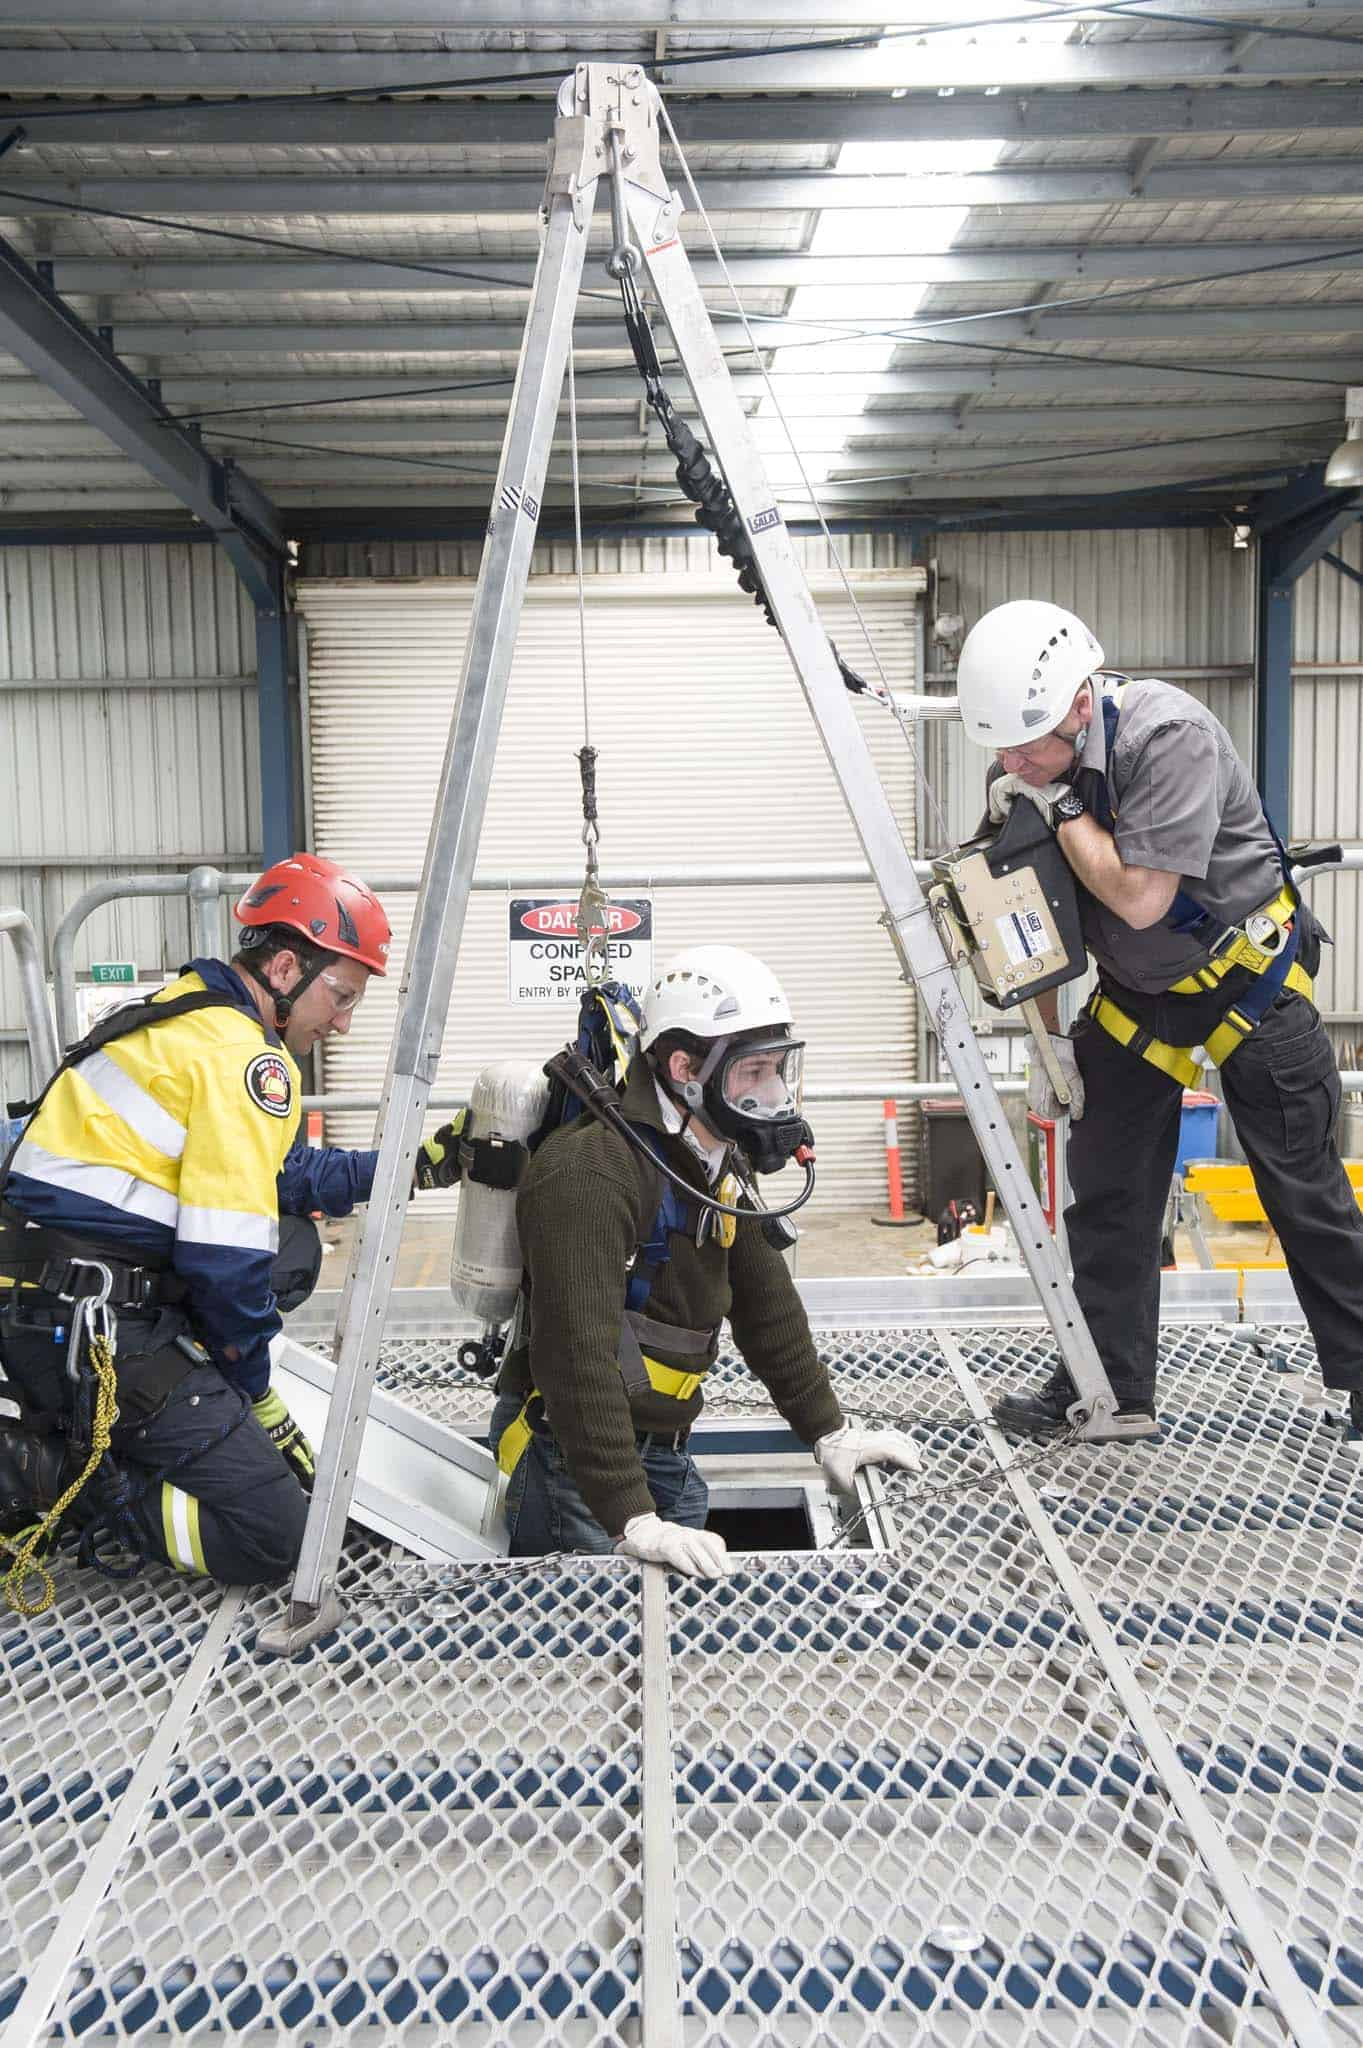 Training Equipment And Facilities Fire And Safety Australia